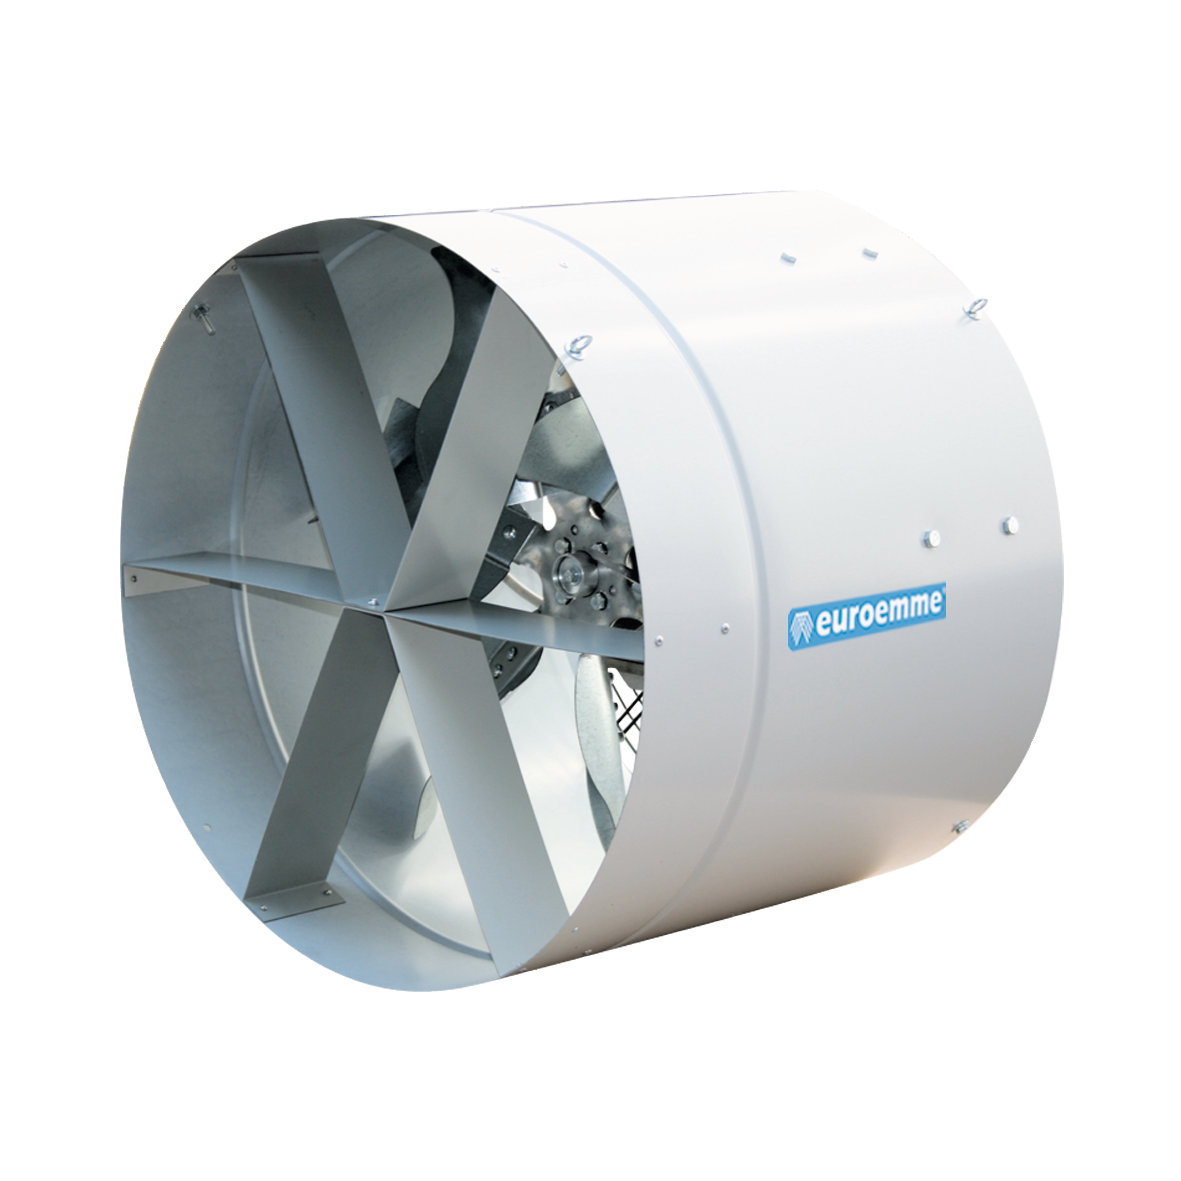 Air Blower Product : Euroemme edc air blower products munters